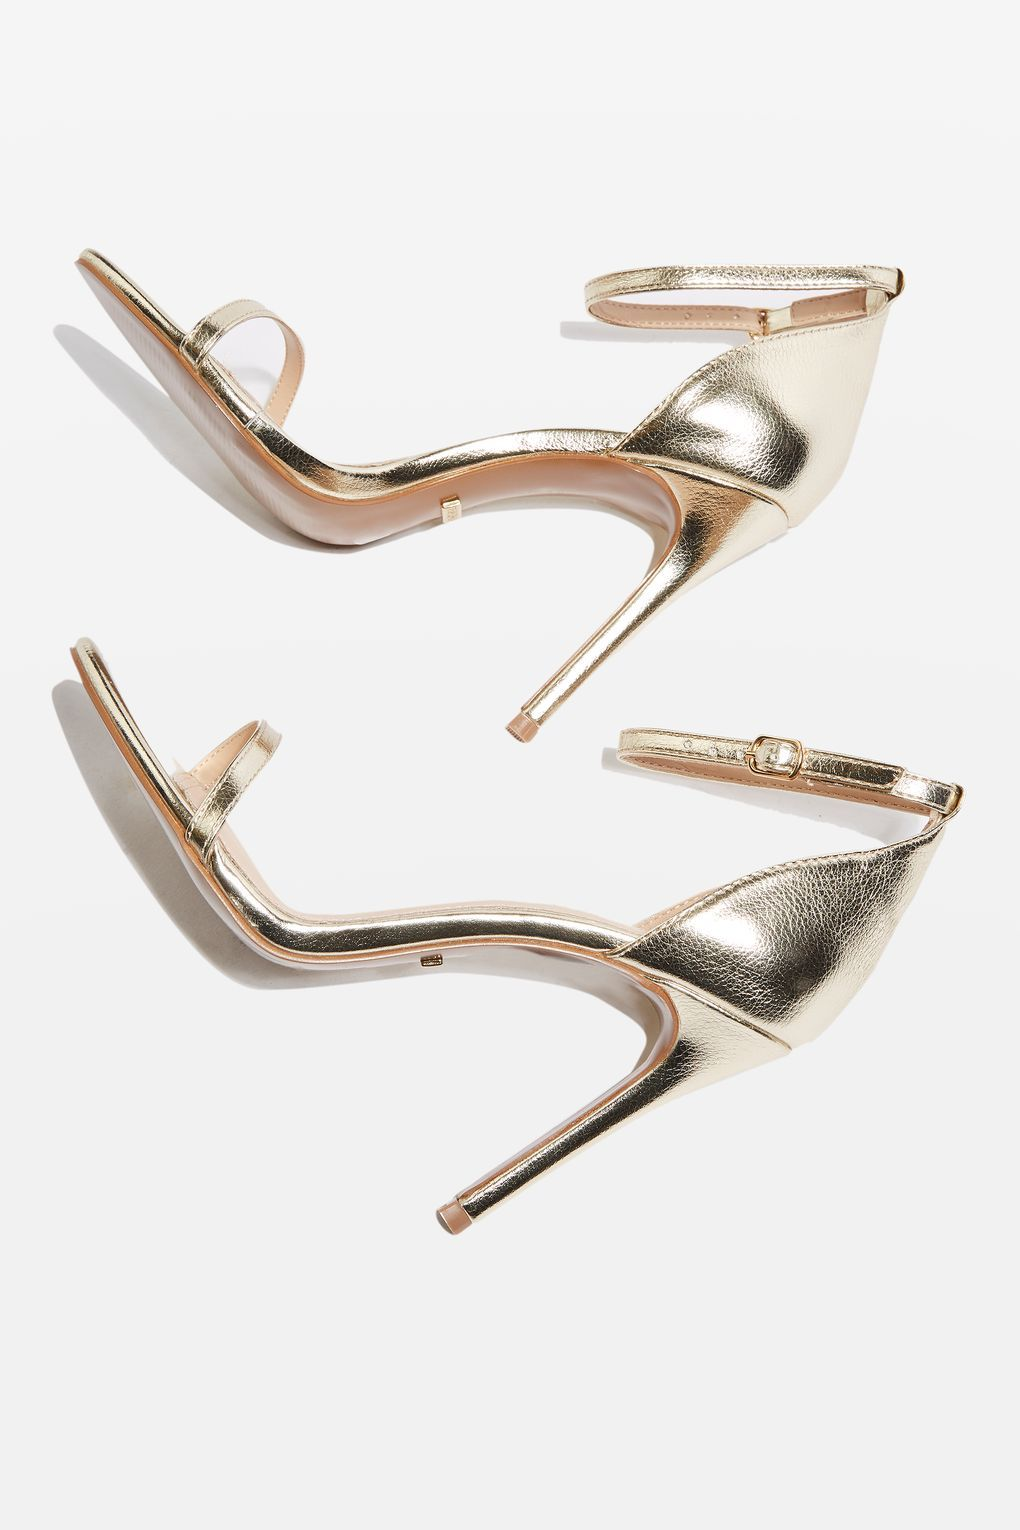 ROSALIE Skinny 2 Part Sandals - New In Fashion - New In - Topshop